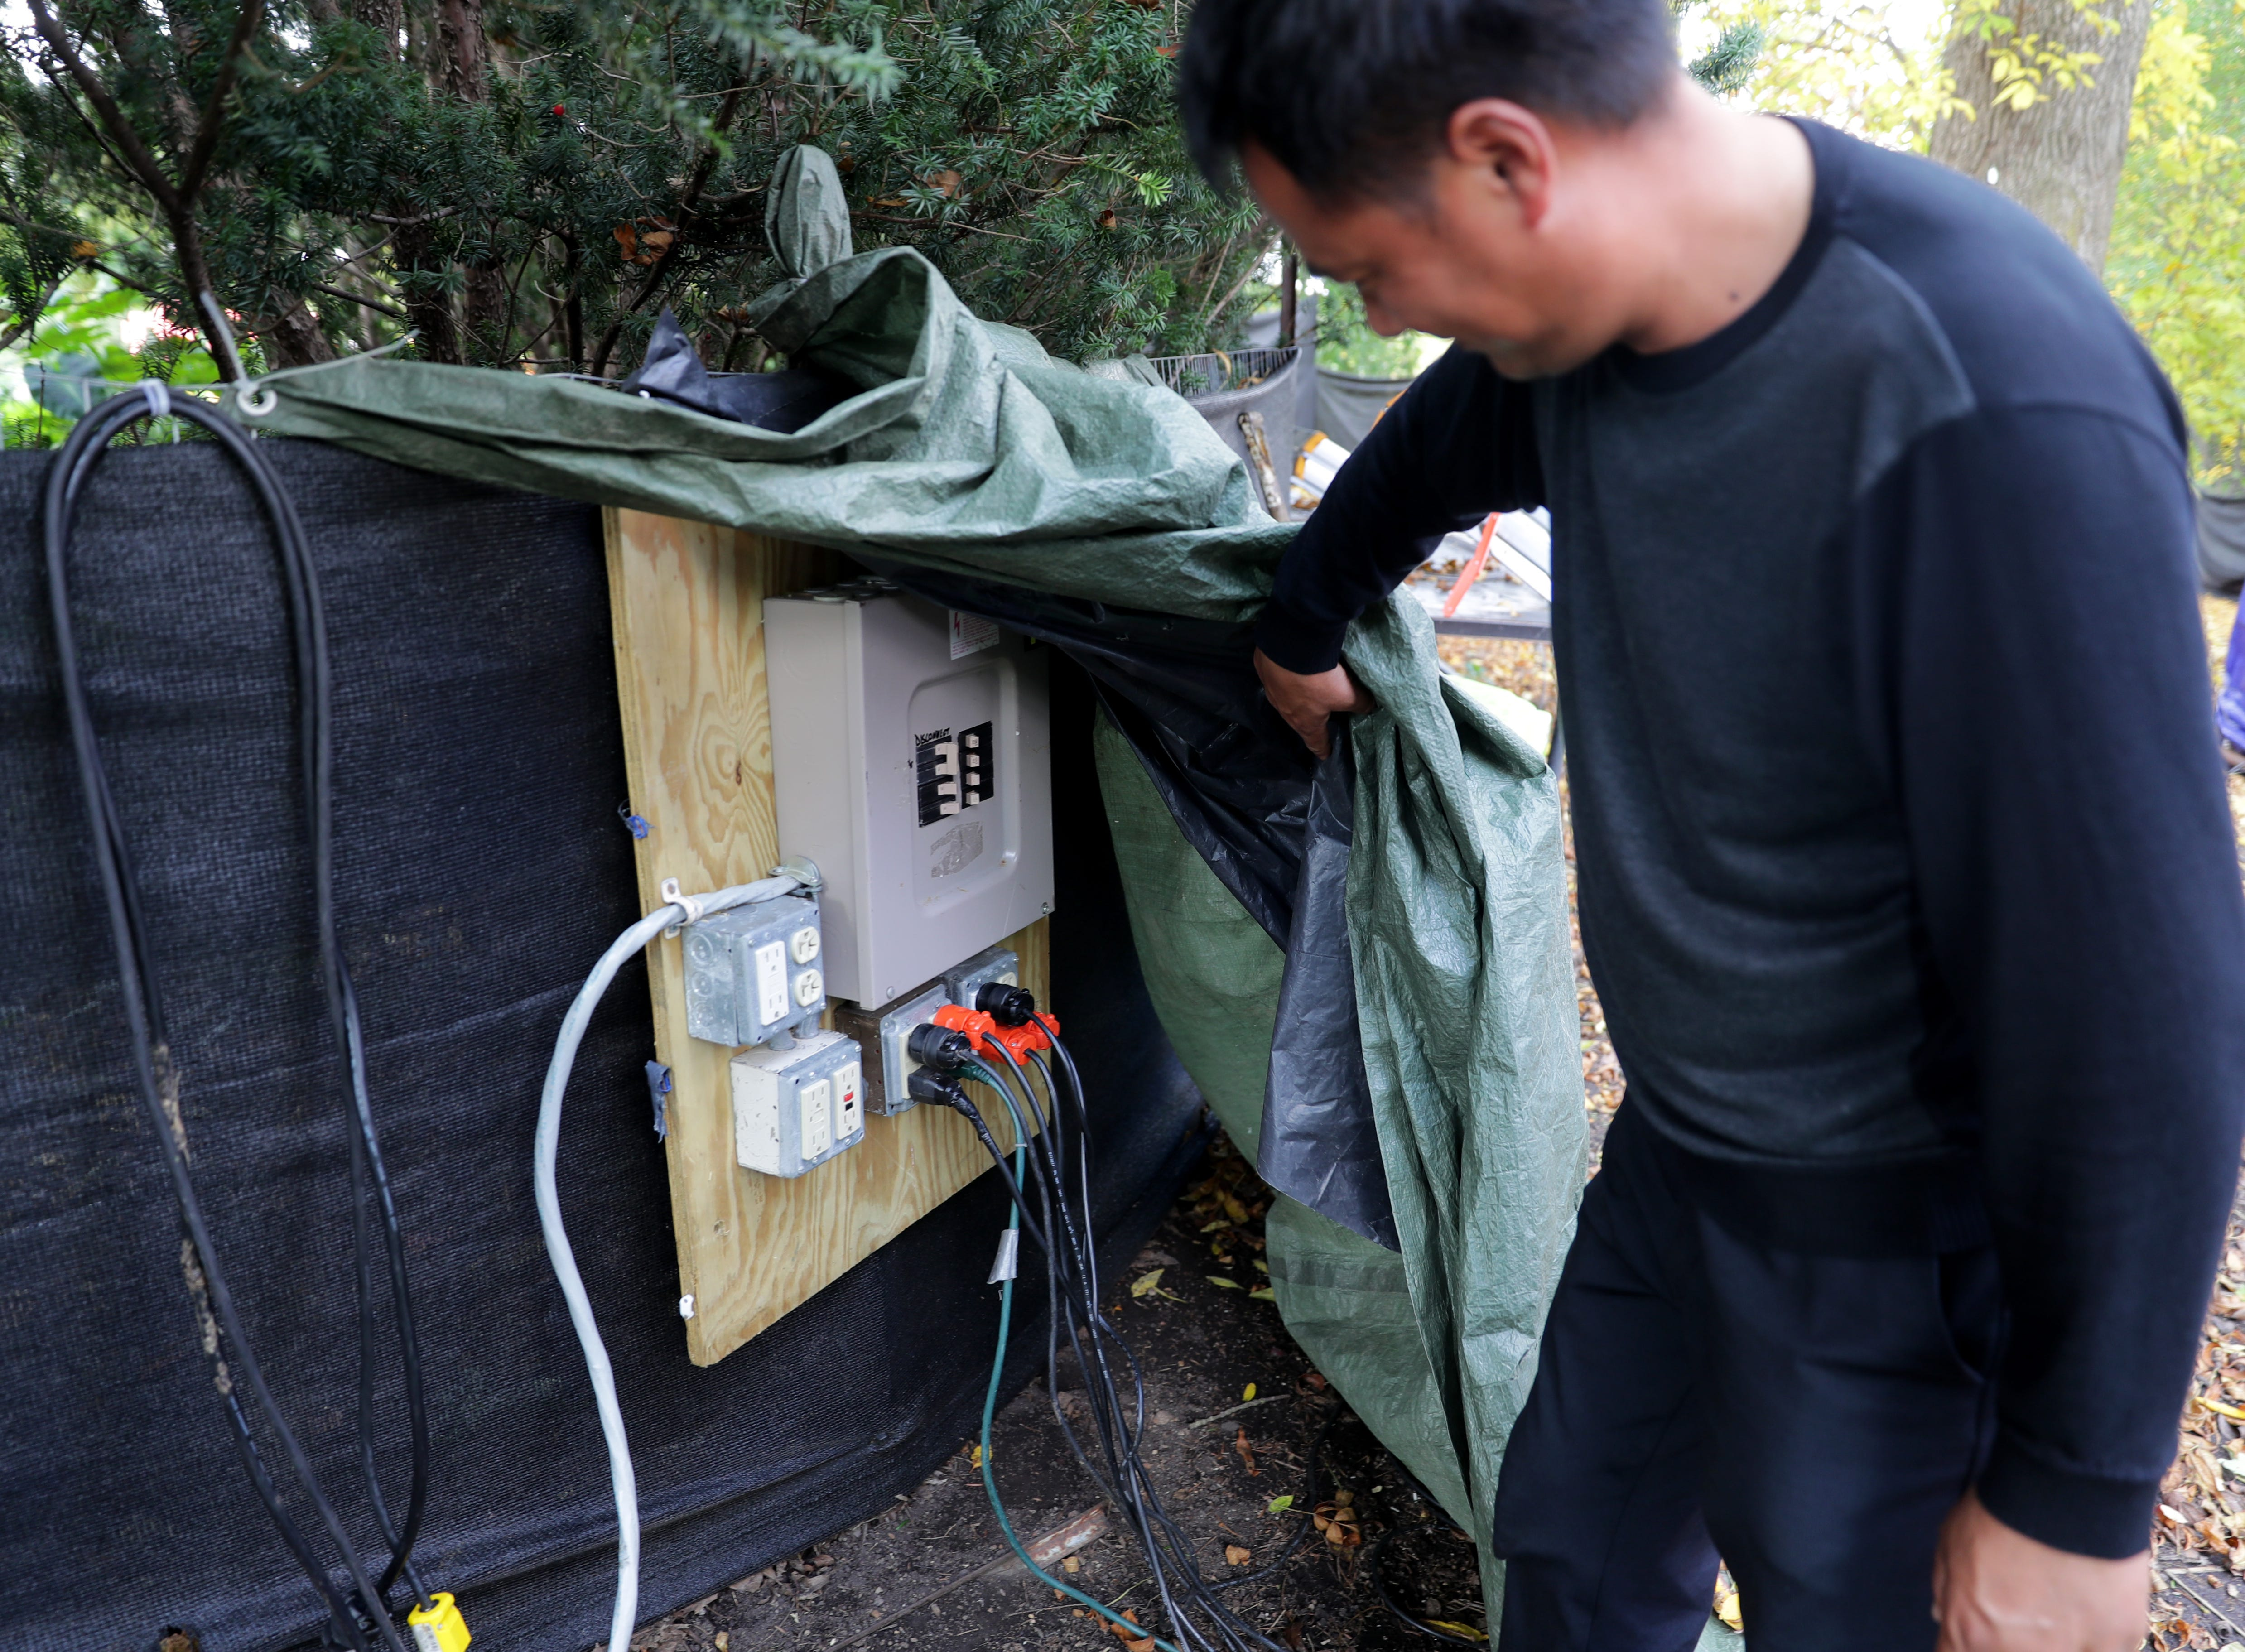 Liu Yufu, the China Lights supervisor of workers, looks over an electrical box used to power supplies.